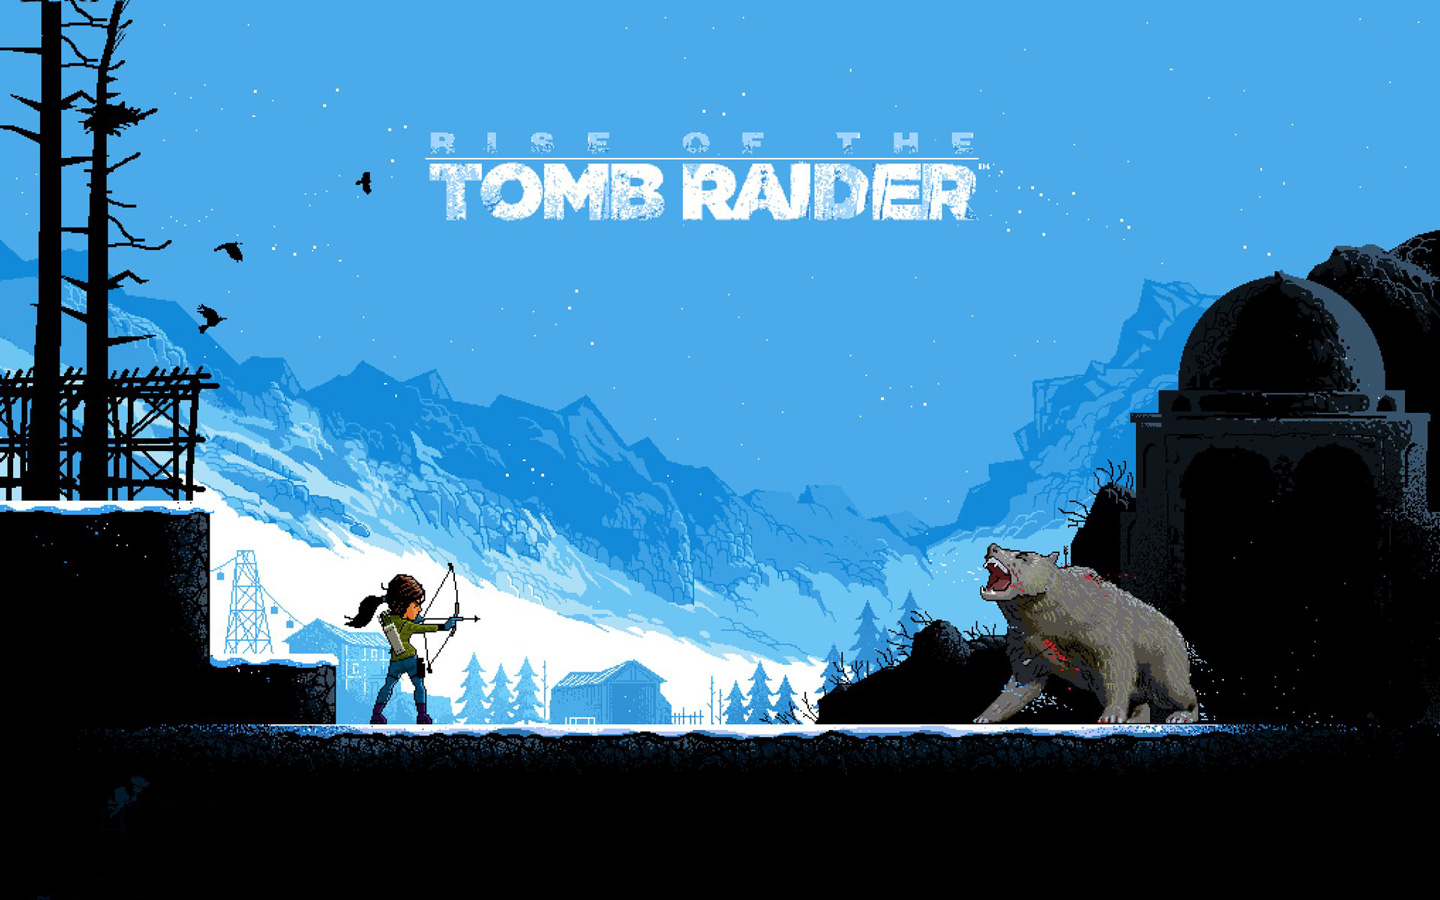 Free Rise of the Tomb Raider Wallpaper in 1440x900